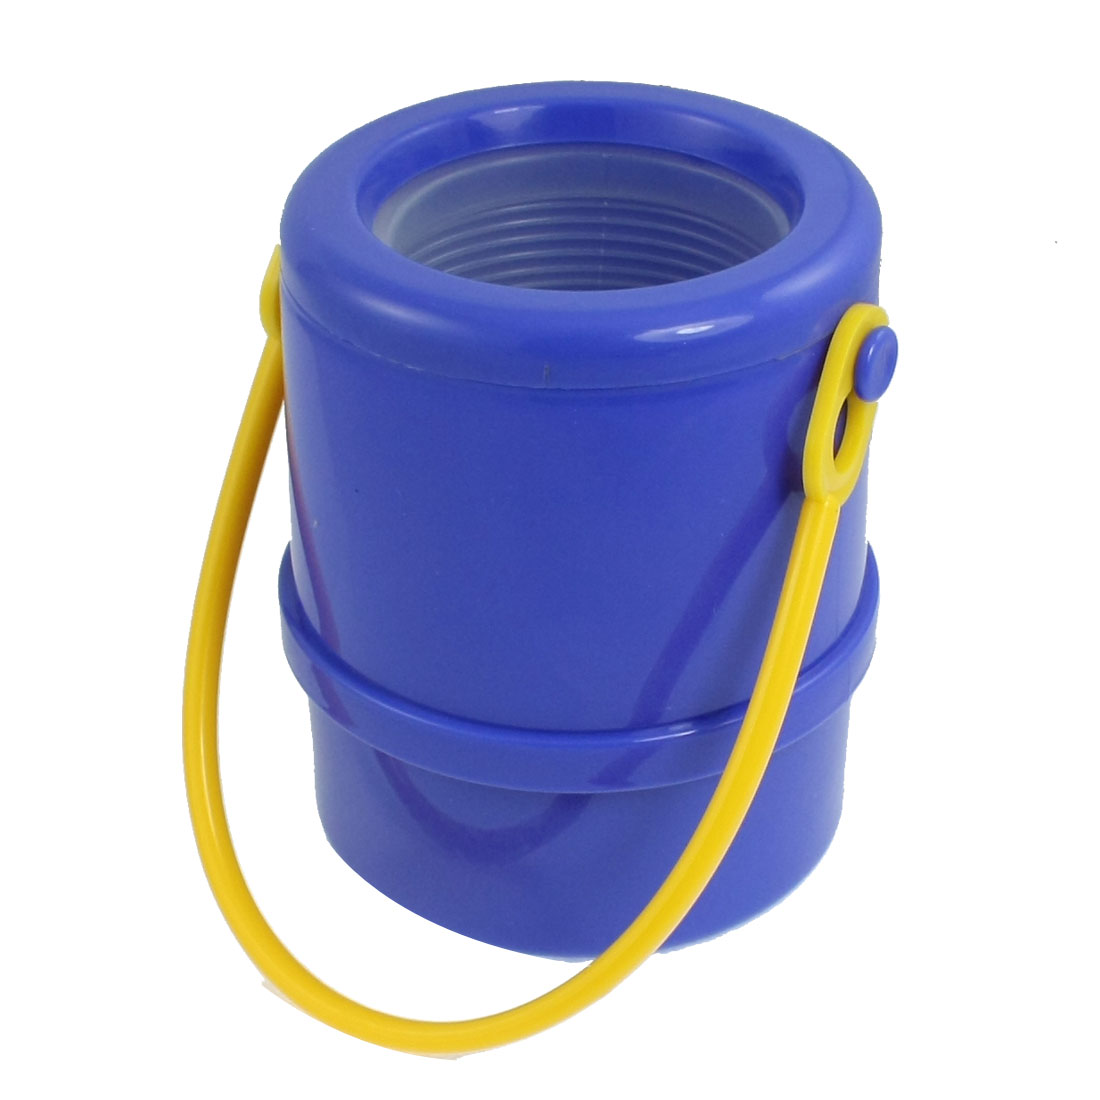 Car Interior Blue Bucket Shape Telescopic Gadget Umbrella Holder